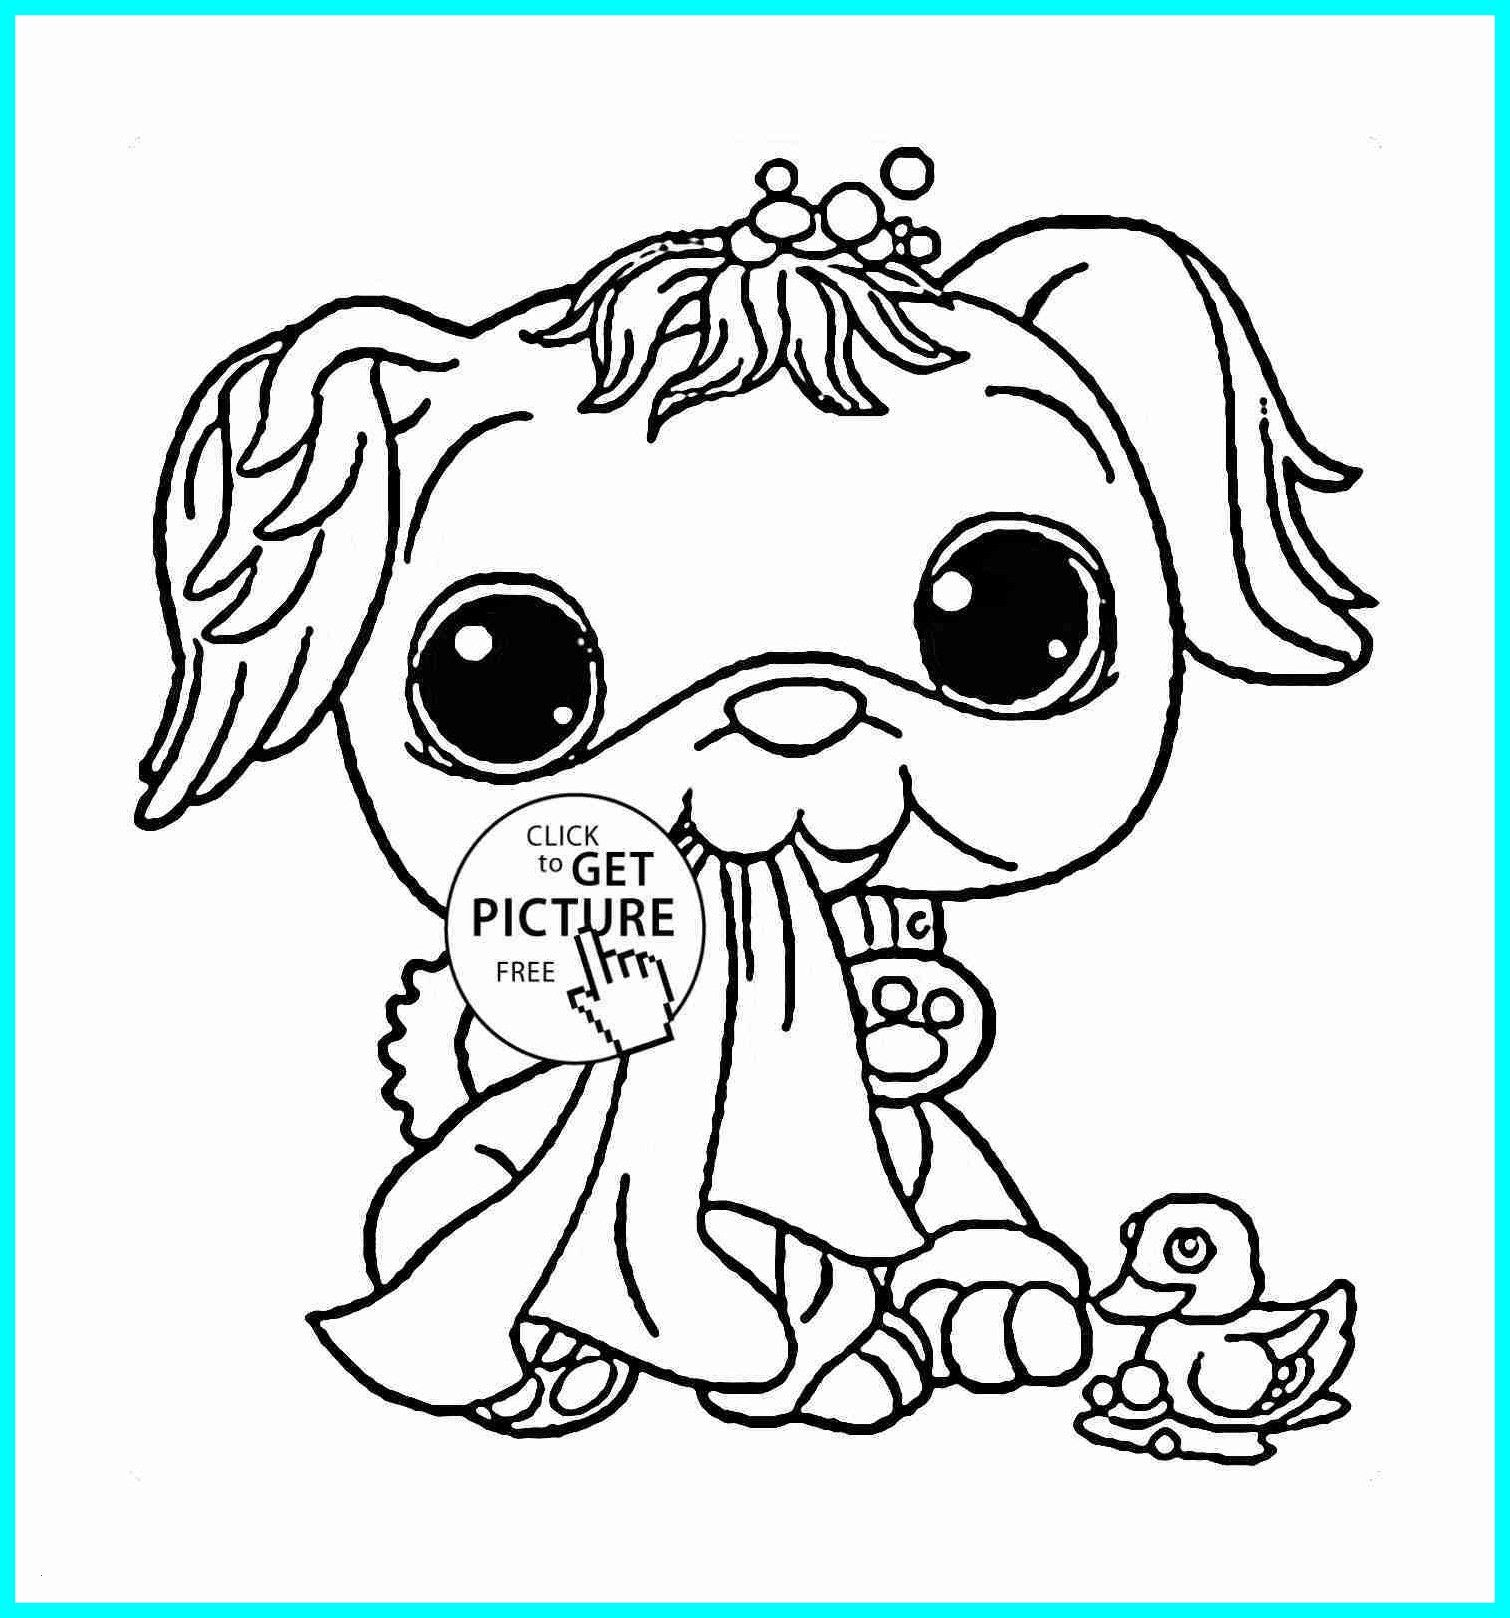 Littlest Pet Shop Coloring Page Fresh Littlest Pet Shop